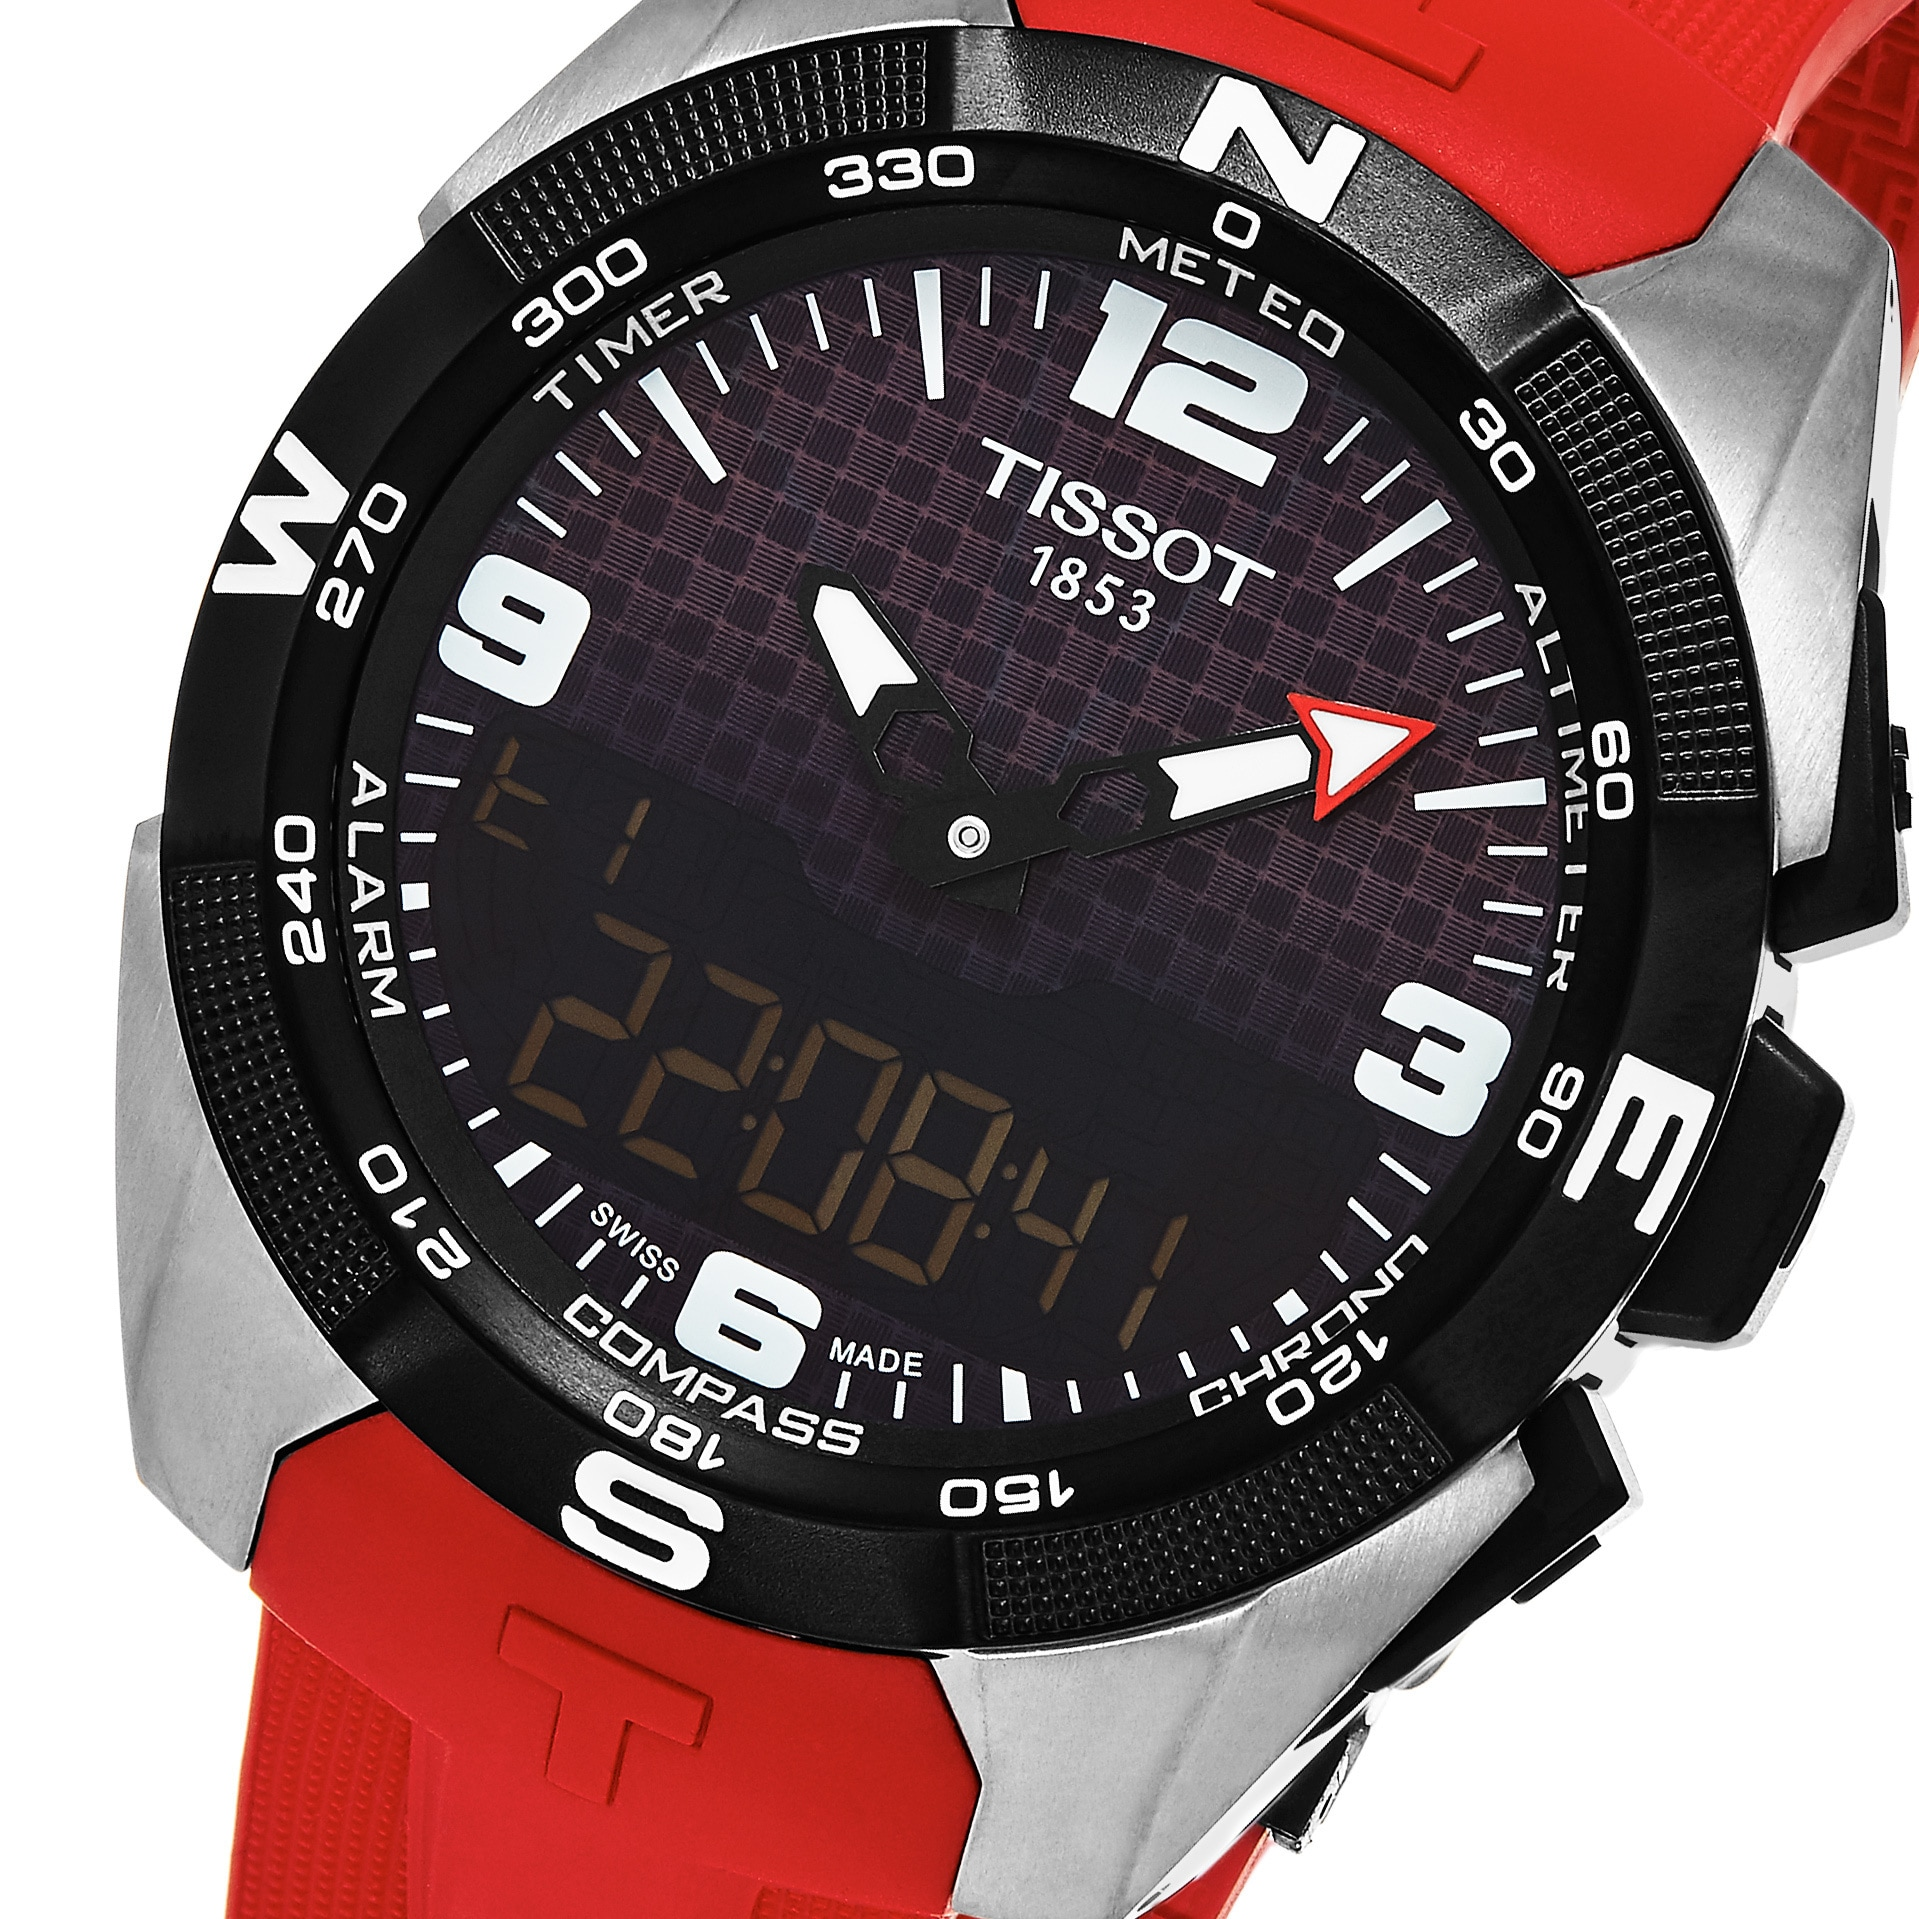 ef4662d02a5 Shop Tissot Men s T0914204705700  T Touch Expert  Black Dial Red Rubber  Strap Swiss Quartz Watch - Free Shipping Today - Overstock - 11902691